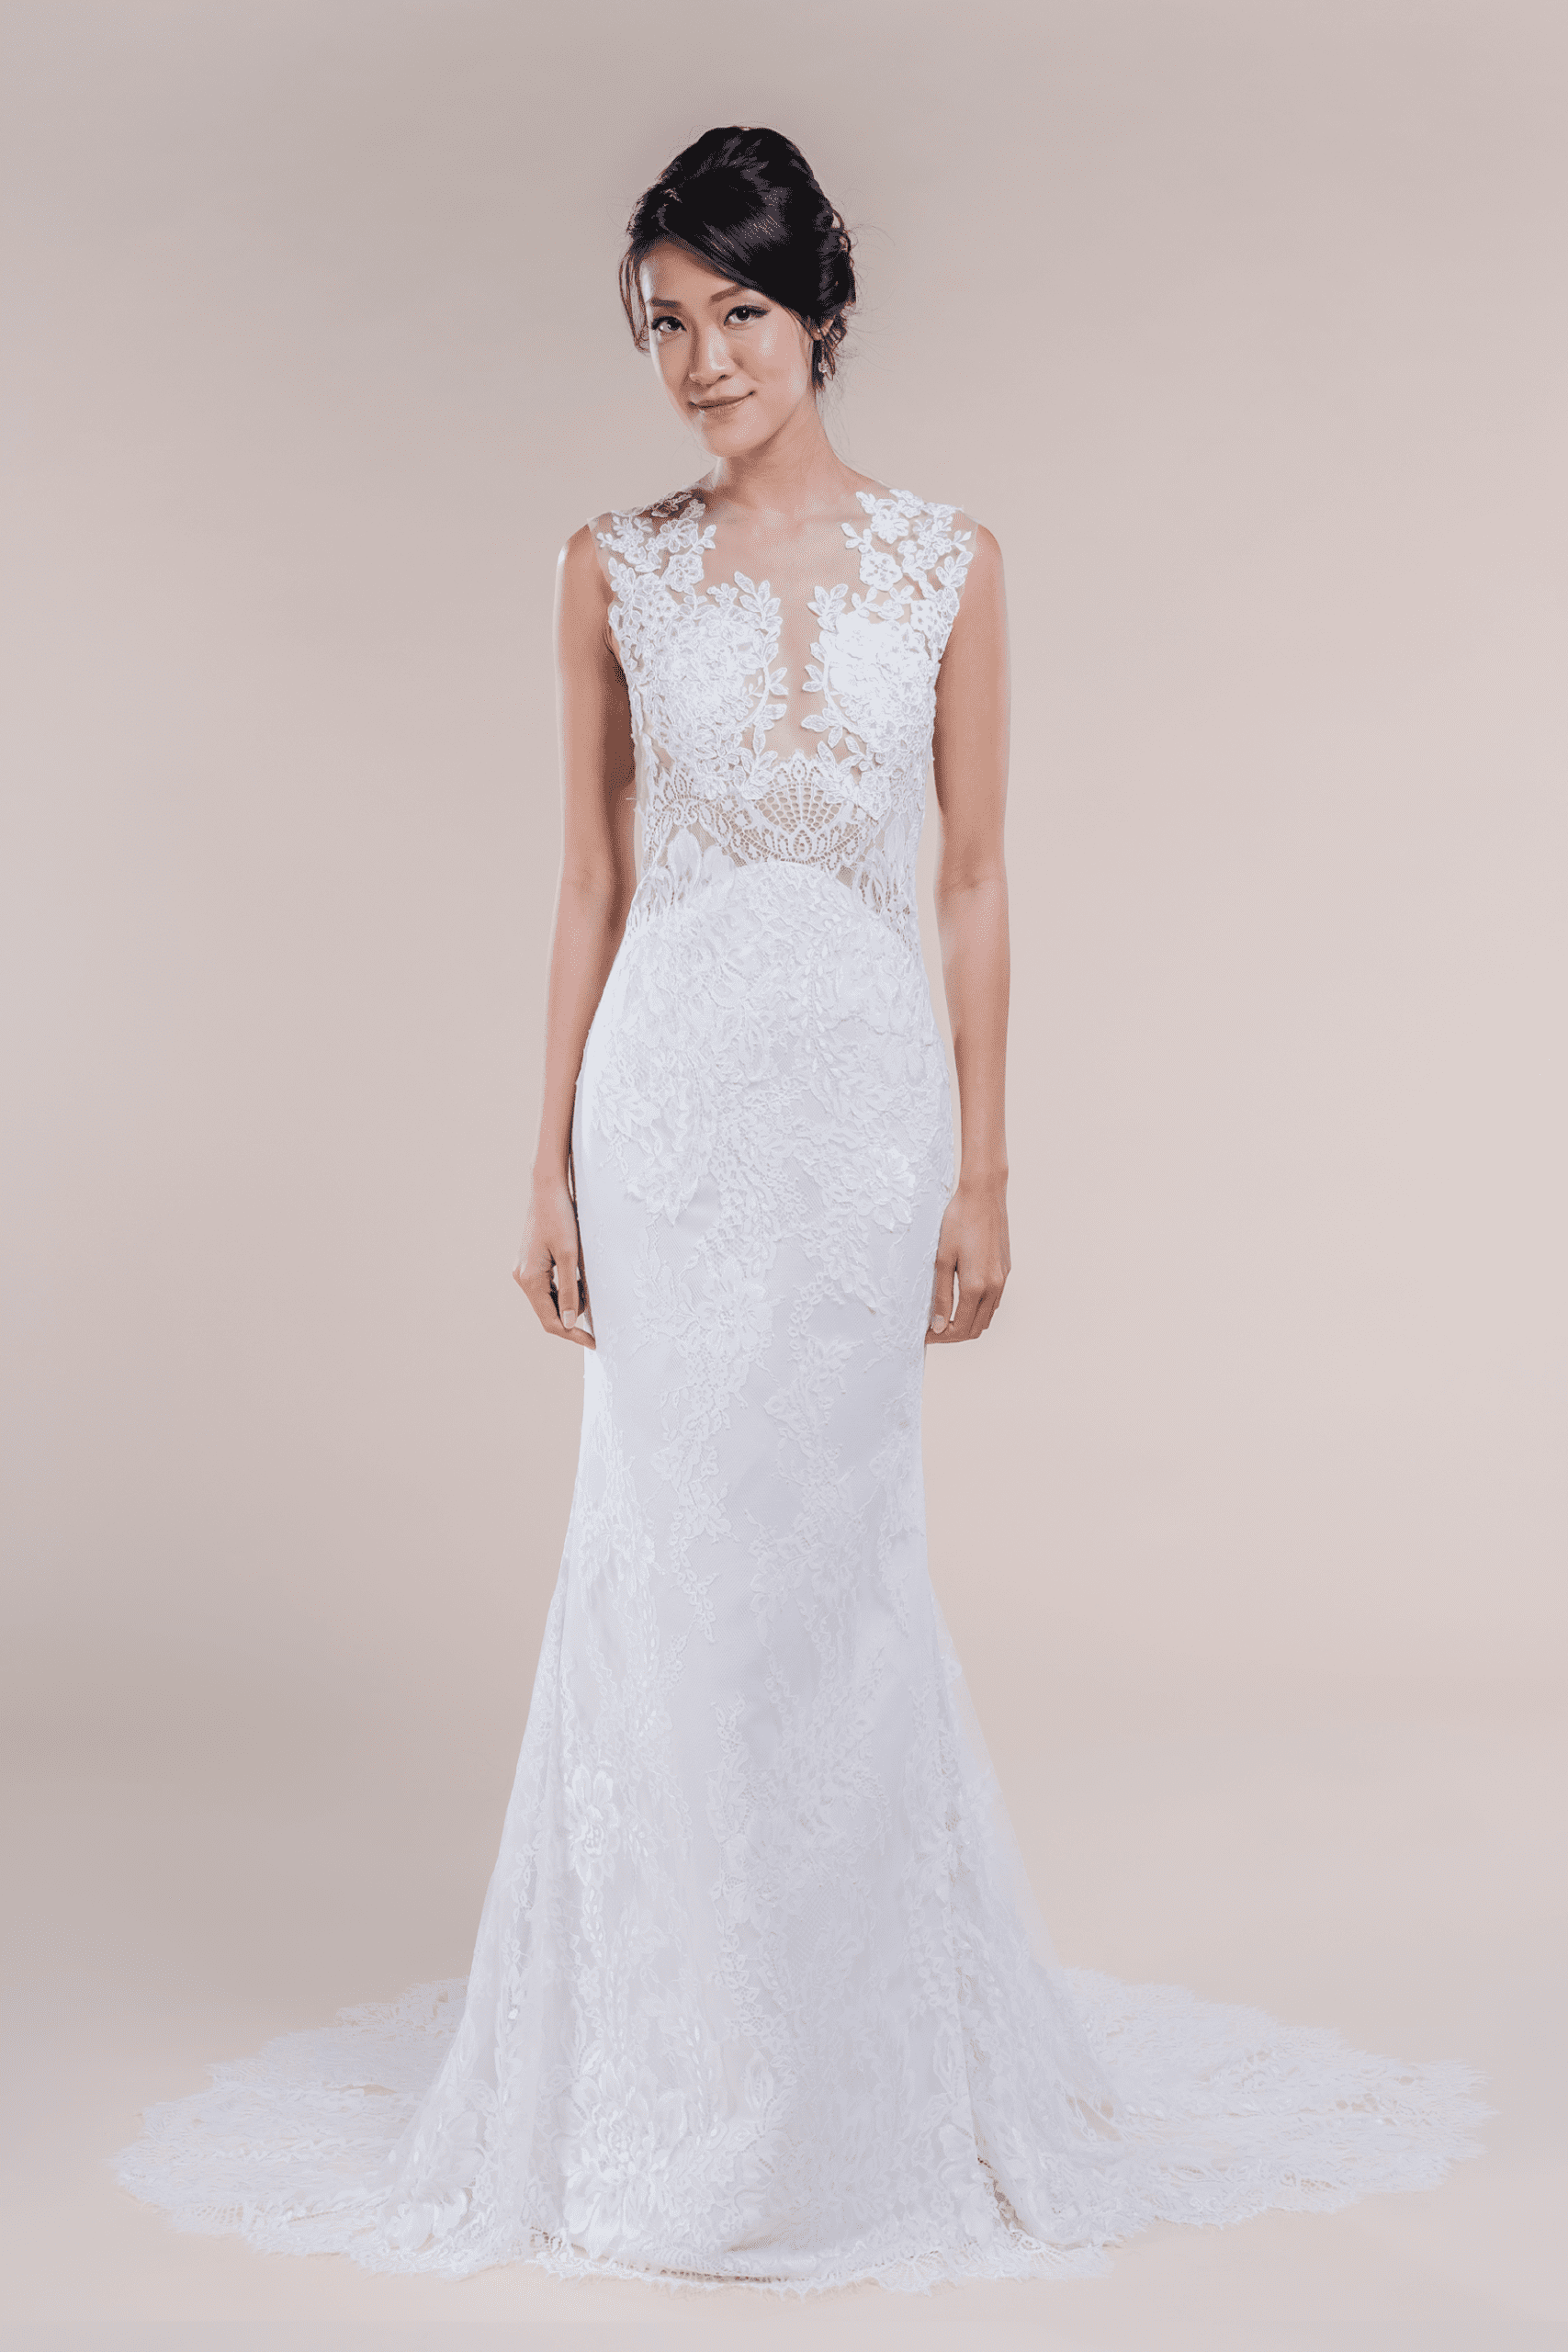 Stevie-affordable-Bridal-Gown-for-rent-in-Singapore